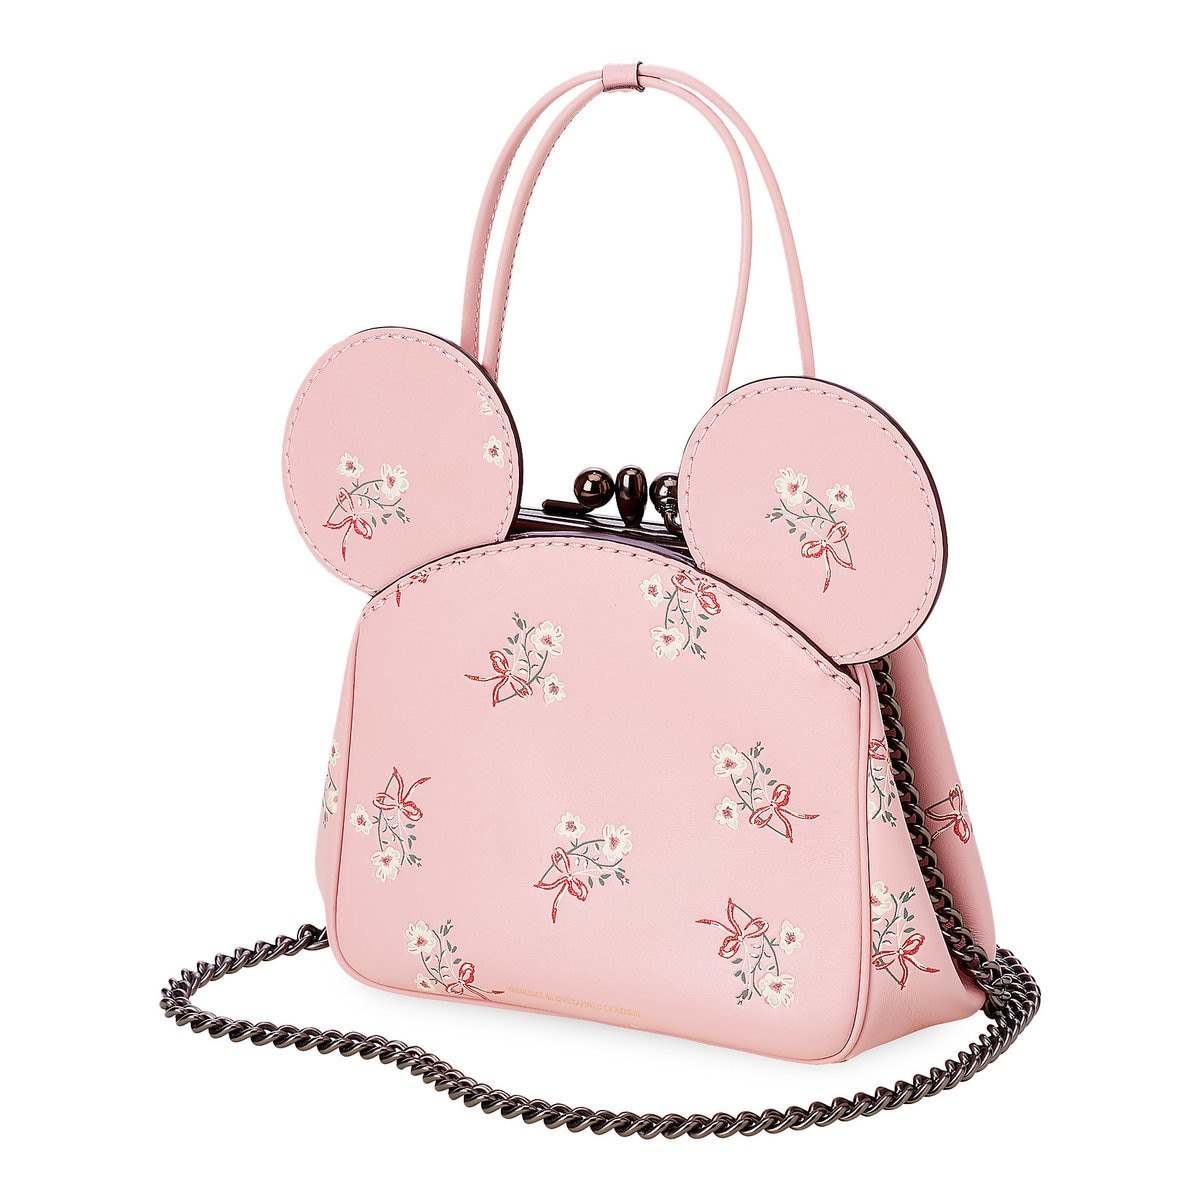 abadee5ac94 Product Image of Minnie Mouse Floral Kisslock Leather Bag by COACH - Pink    1